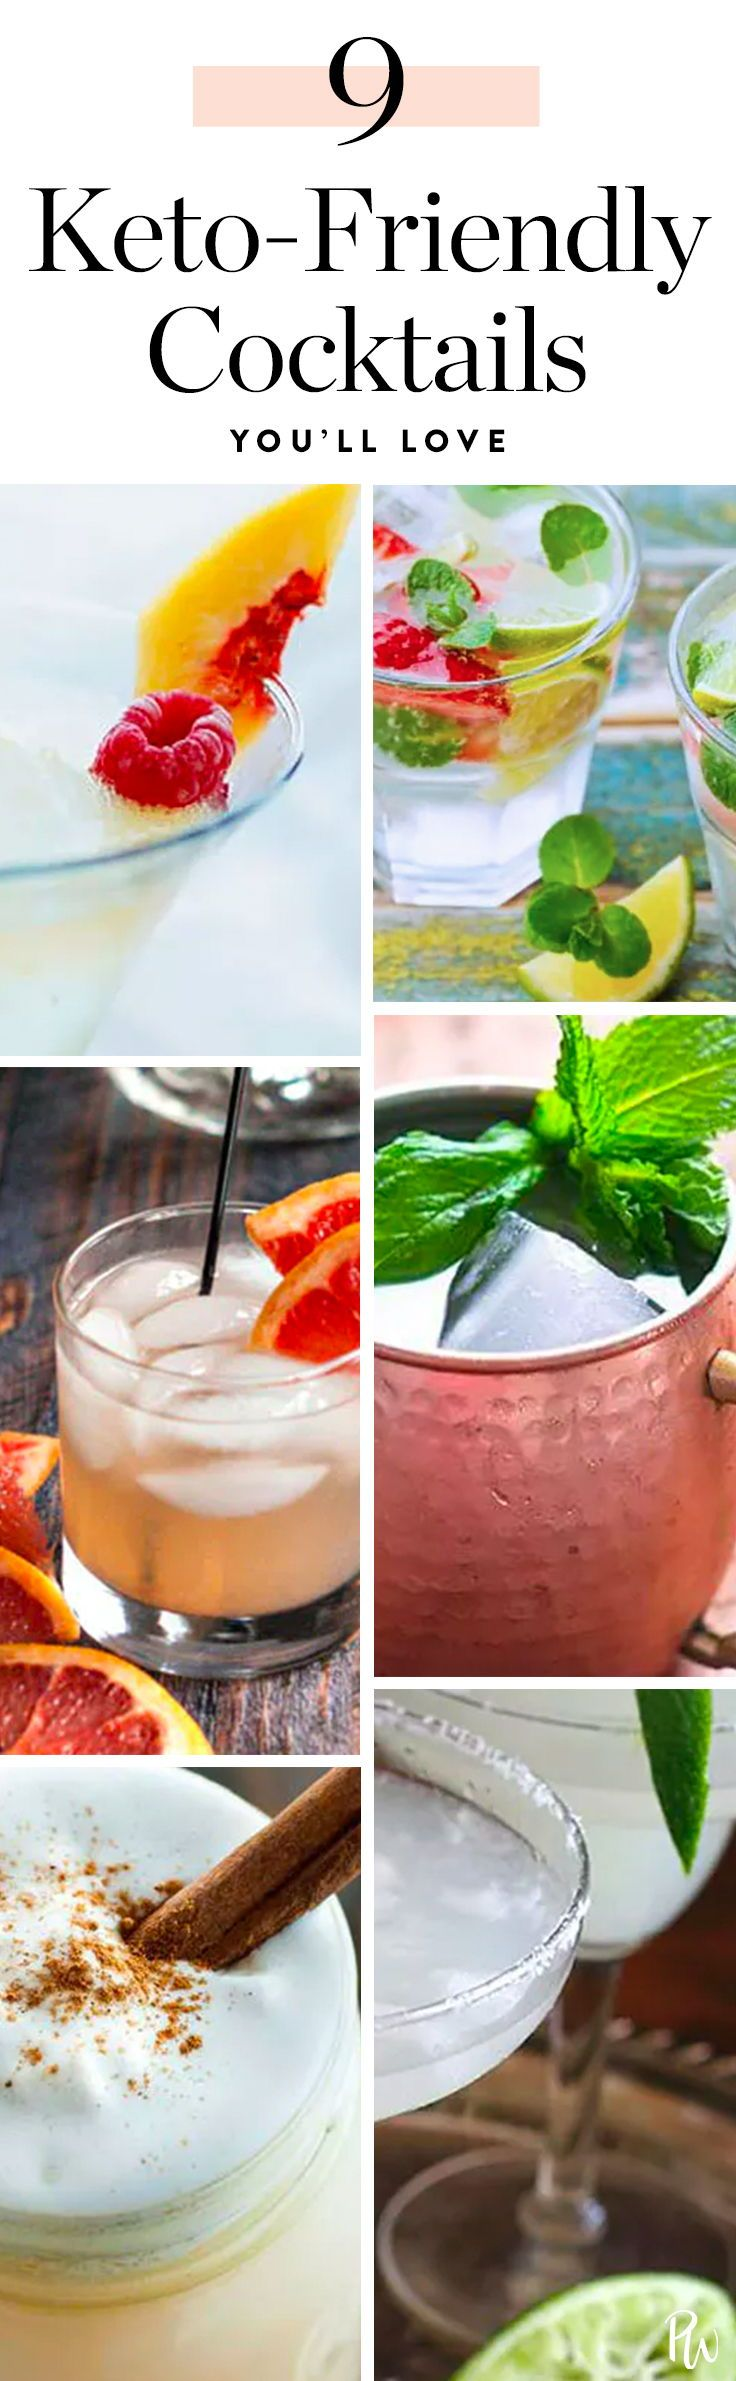 9 Keto-Friendly Cocktails That Are Totally on Your Diet #ketogenic #ketodrinks #ketogenicdiet #cocktailrecipes